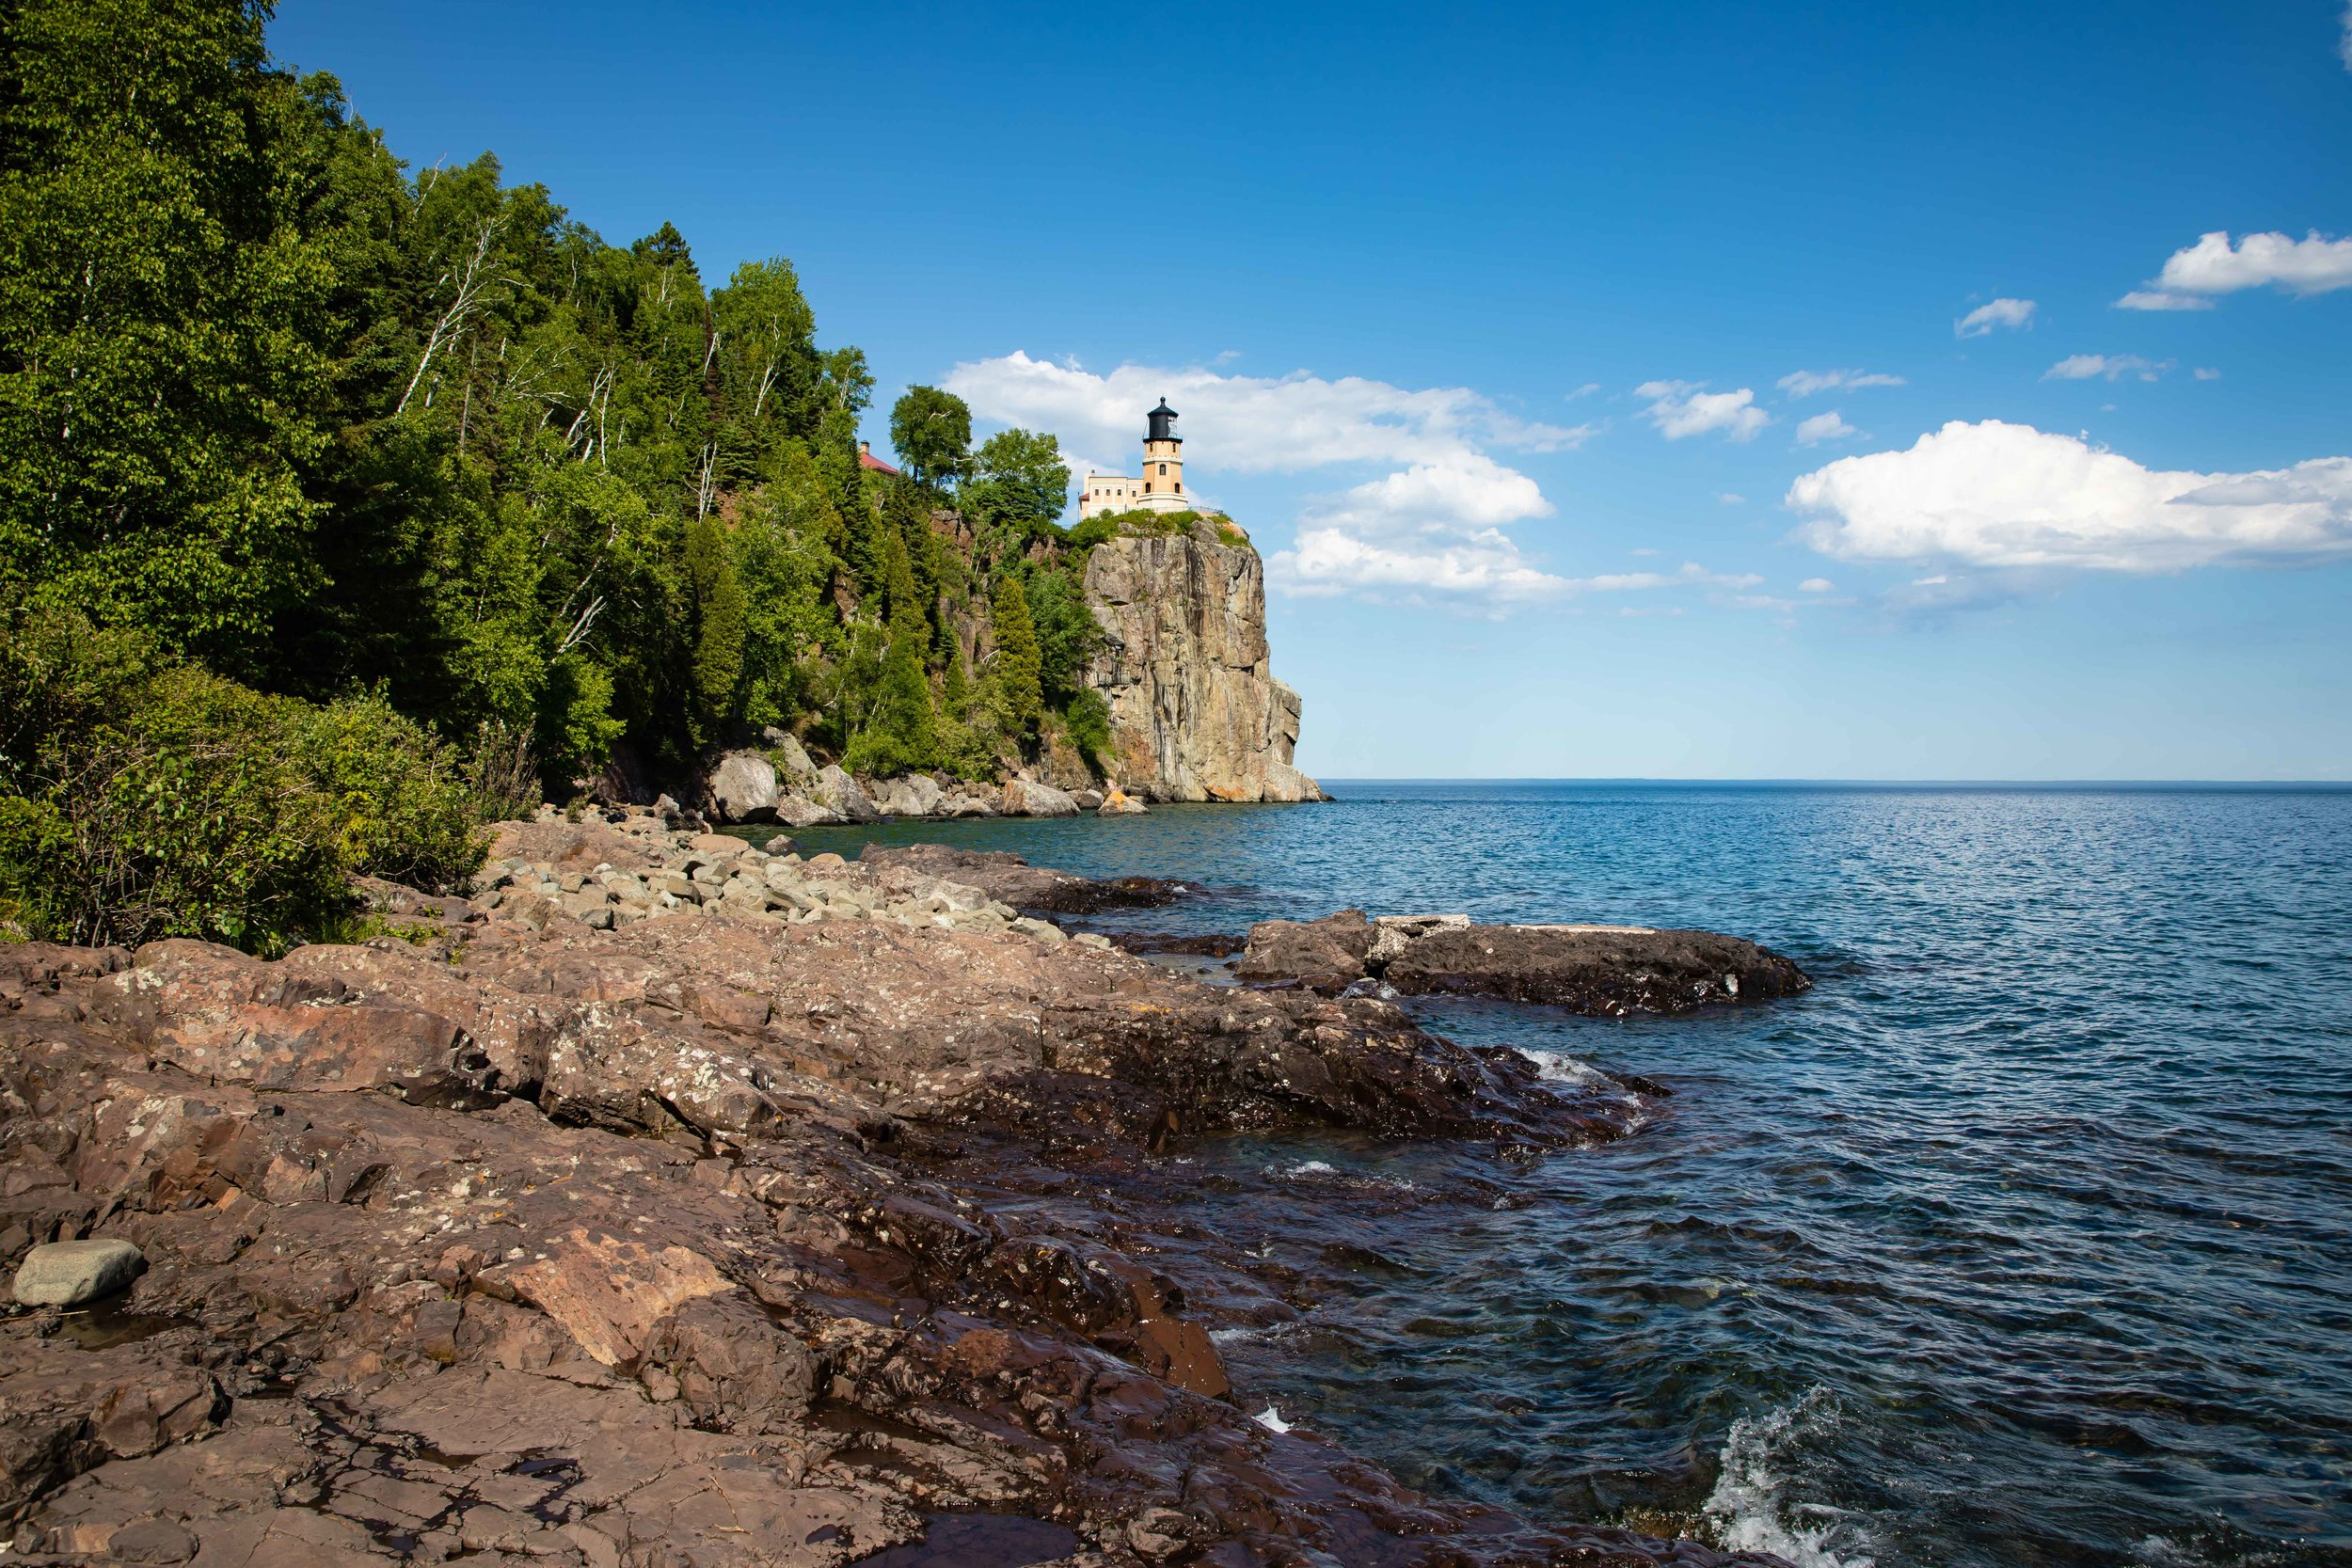 Split Rock Lighthouse, North Shore of Lake Superior, First Lit on July 31, 1910.